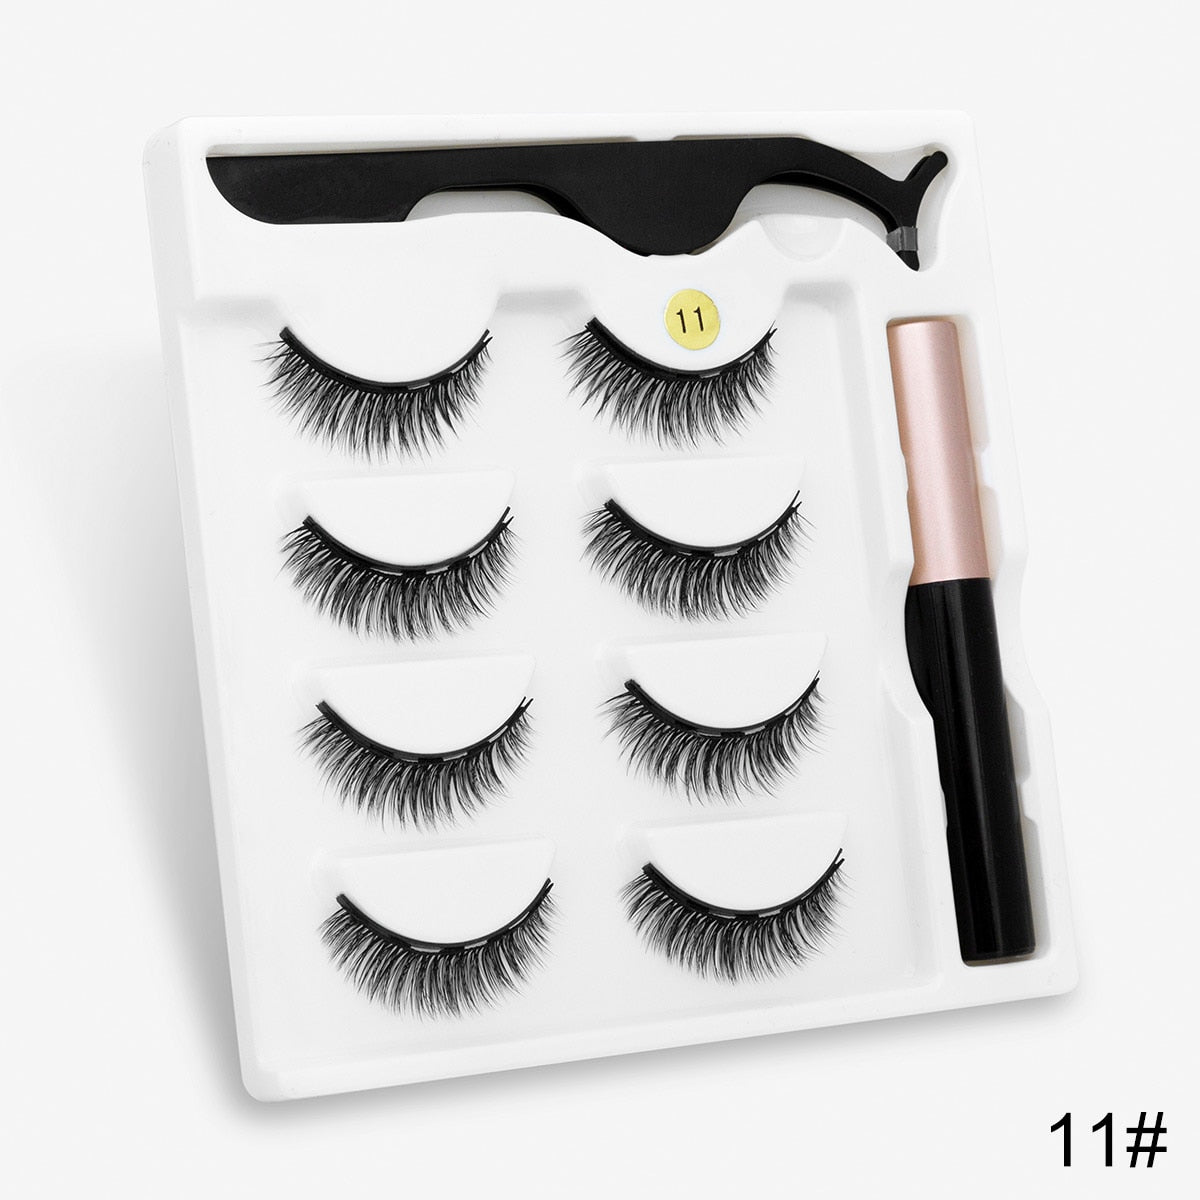 #1 Best Seller Luxury Magnetic Lashes Kit